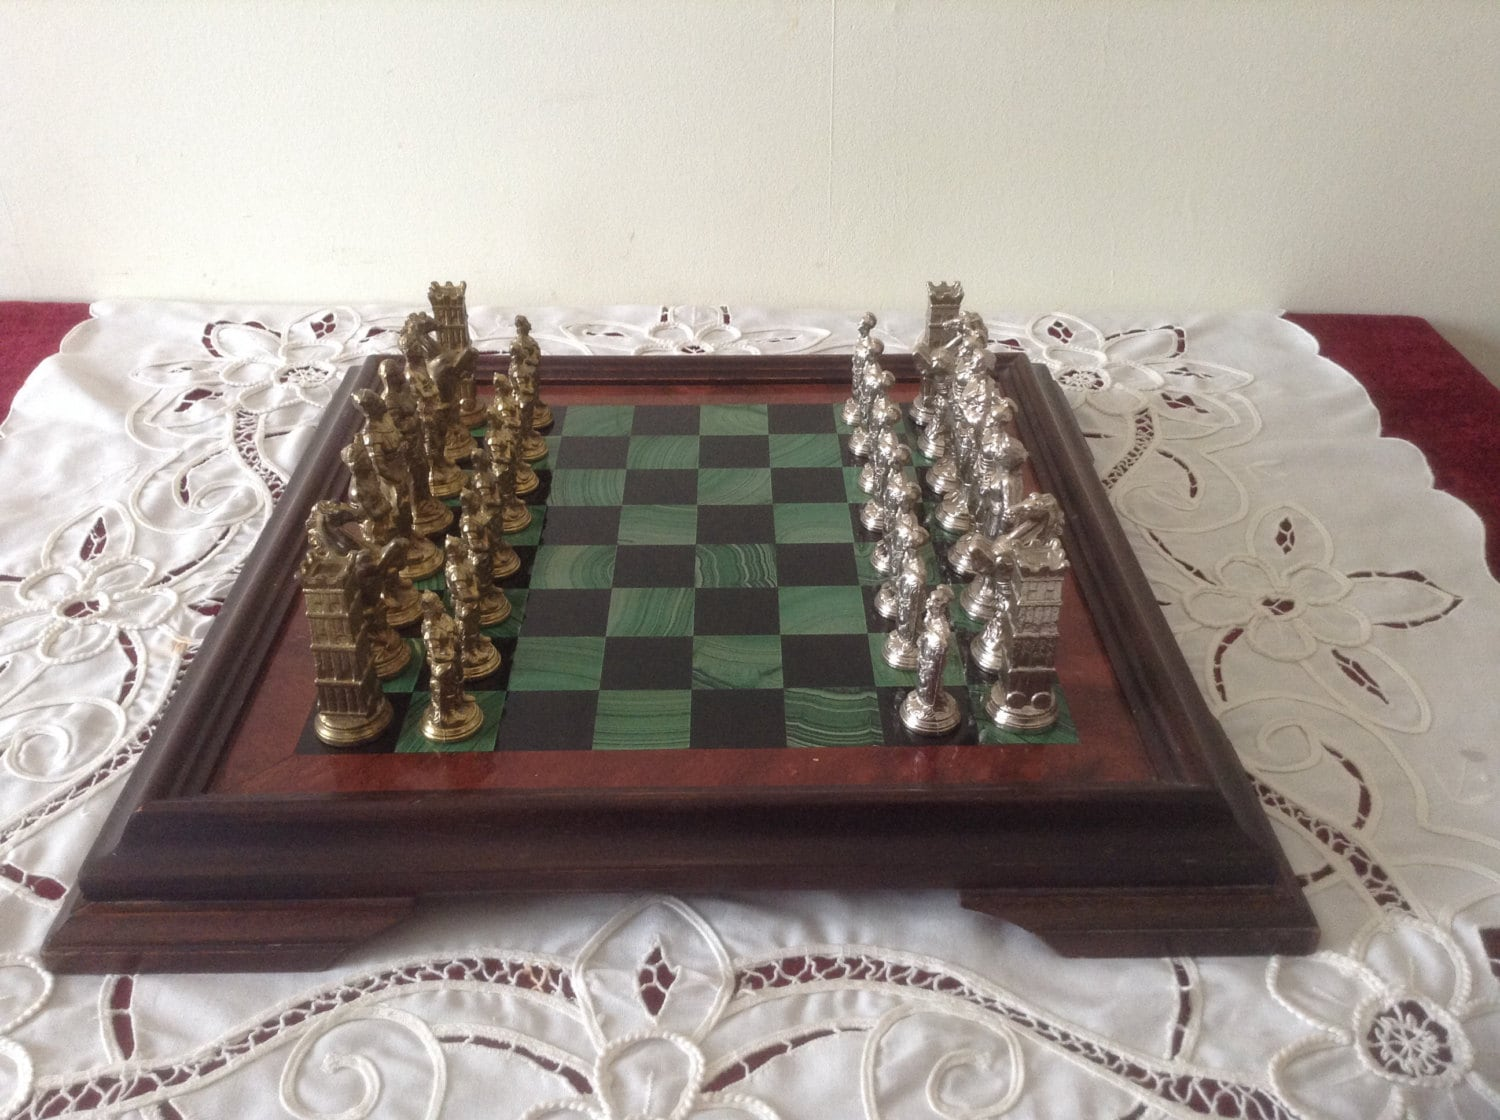 Stunning vintage chess set ornate antique romans v gaules - Ornate chess sets ...